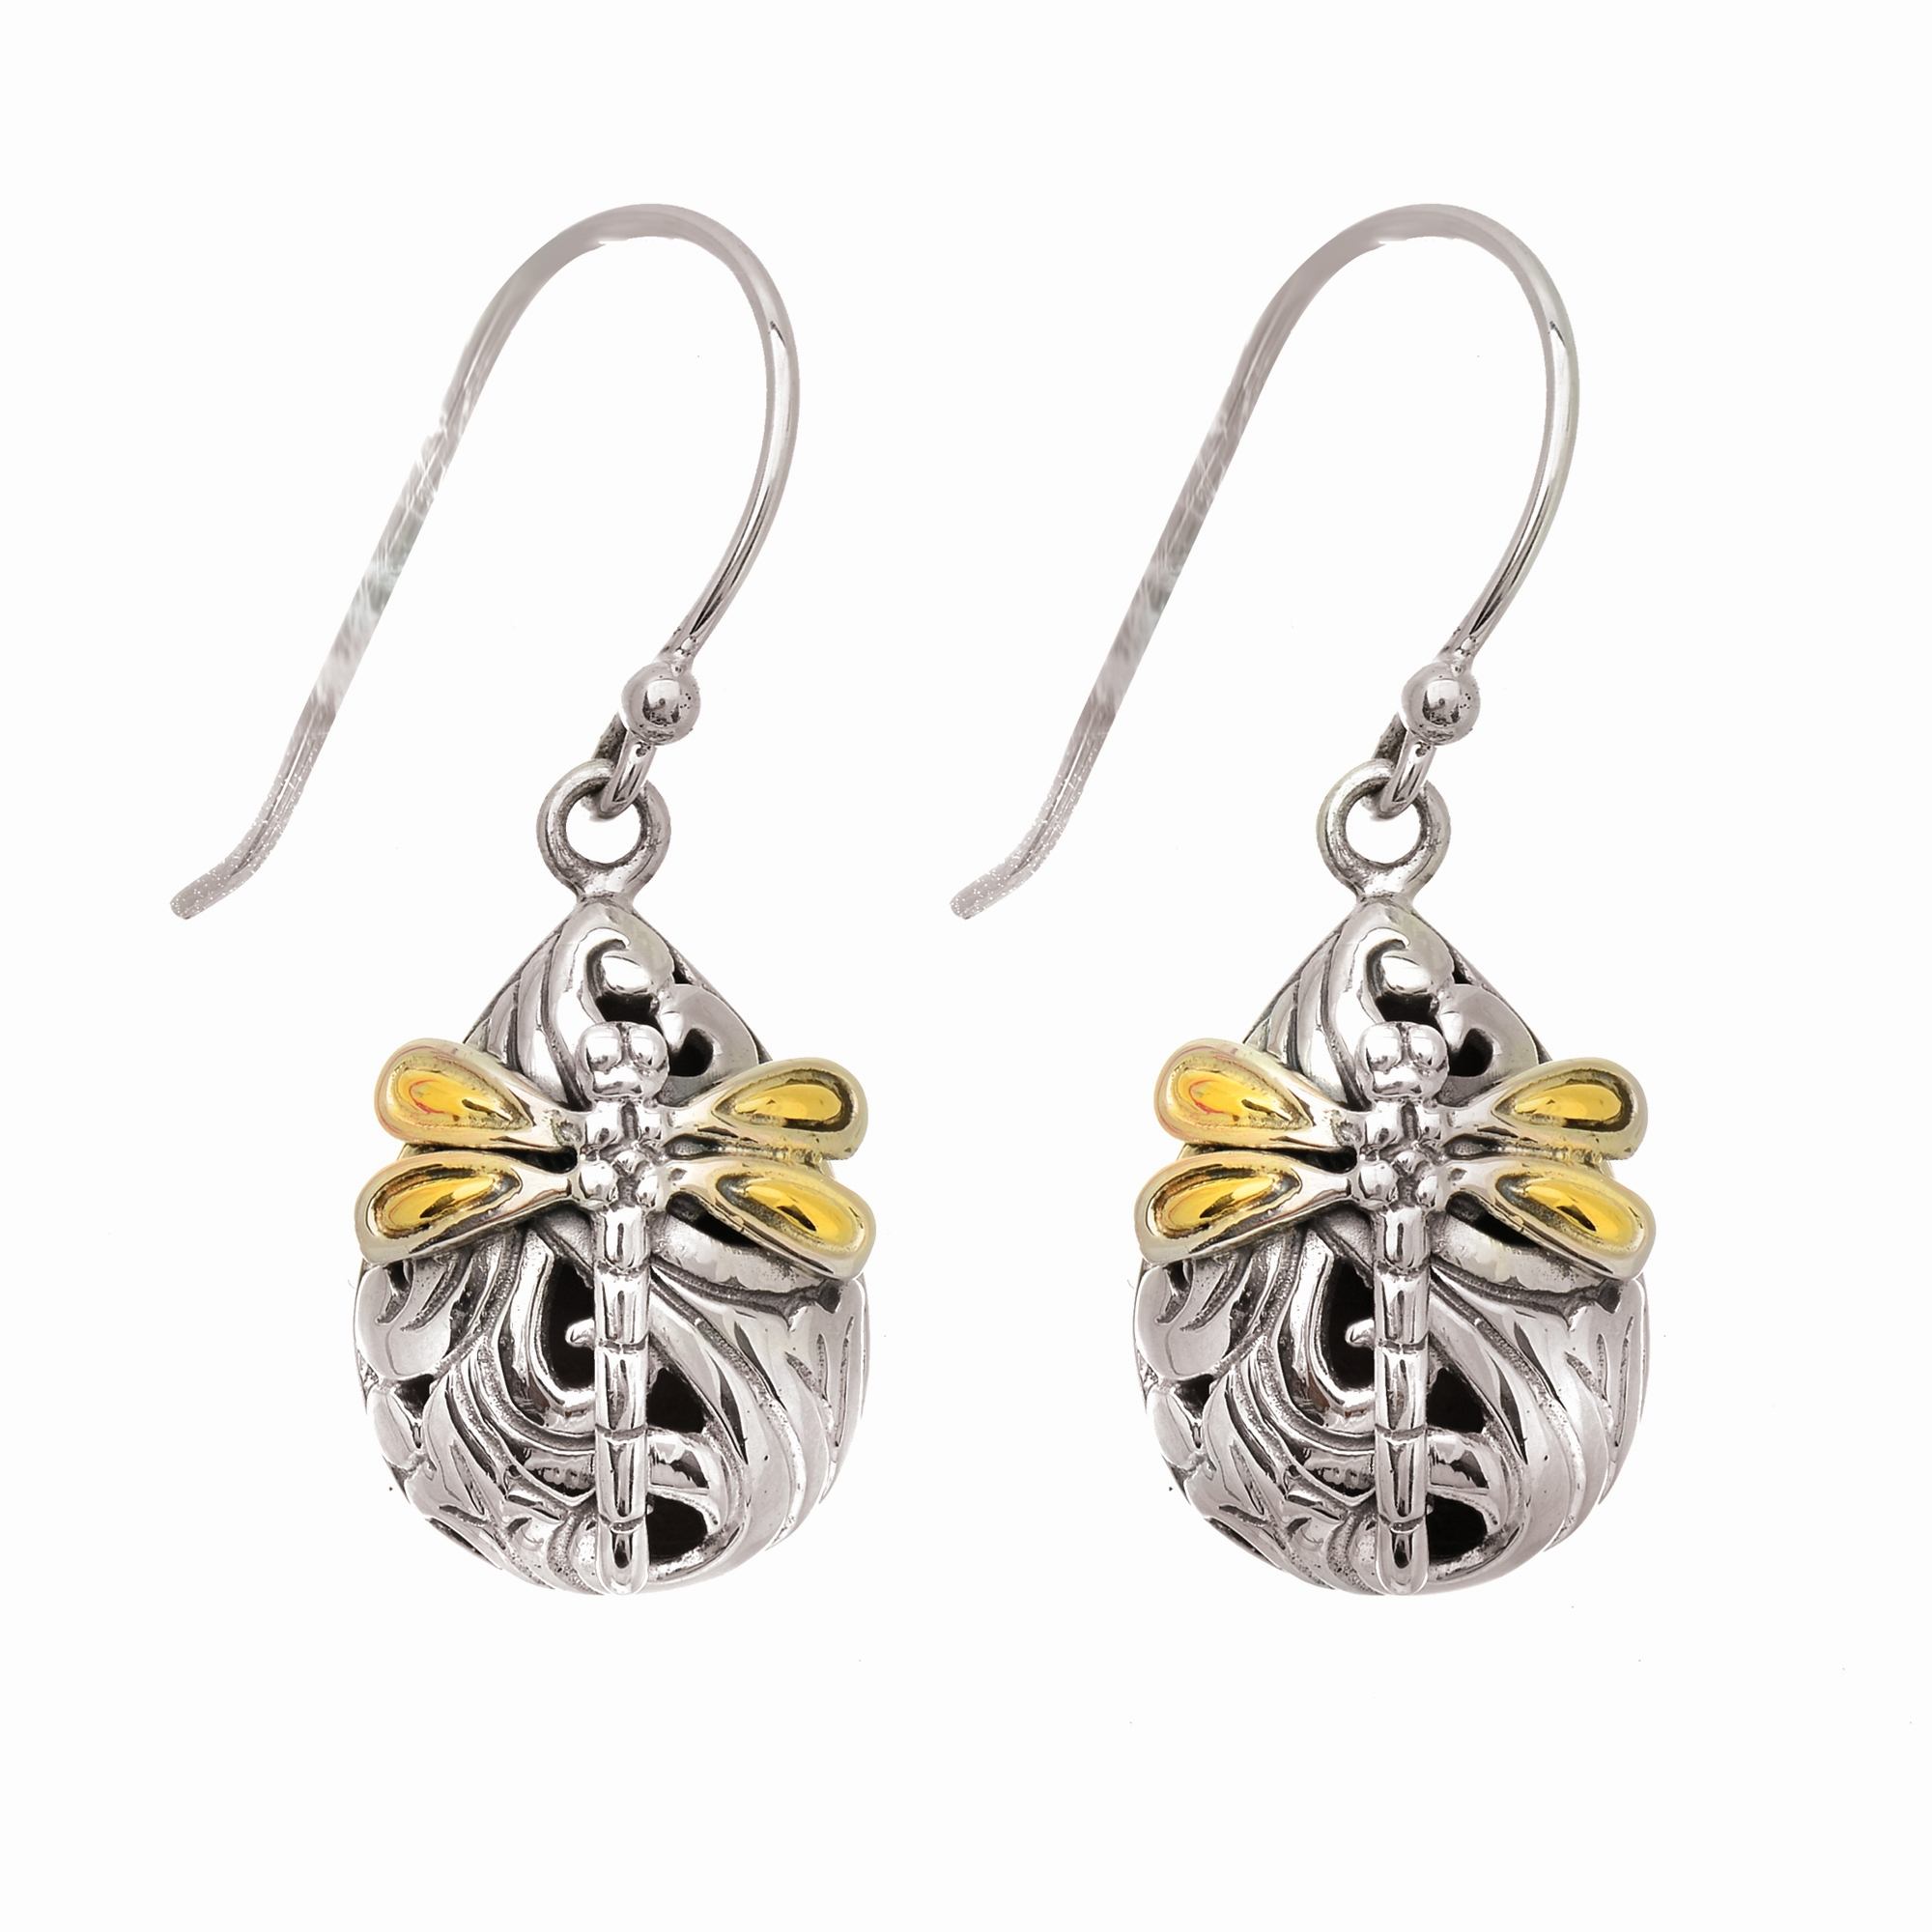 18K YELLOW & WHITE GOLD  Gold Earrings by Phillip Gavriel